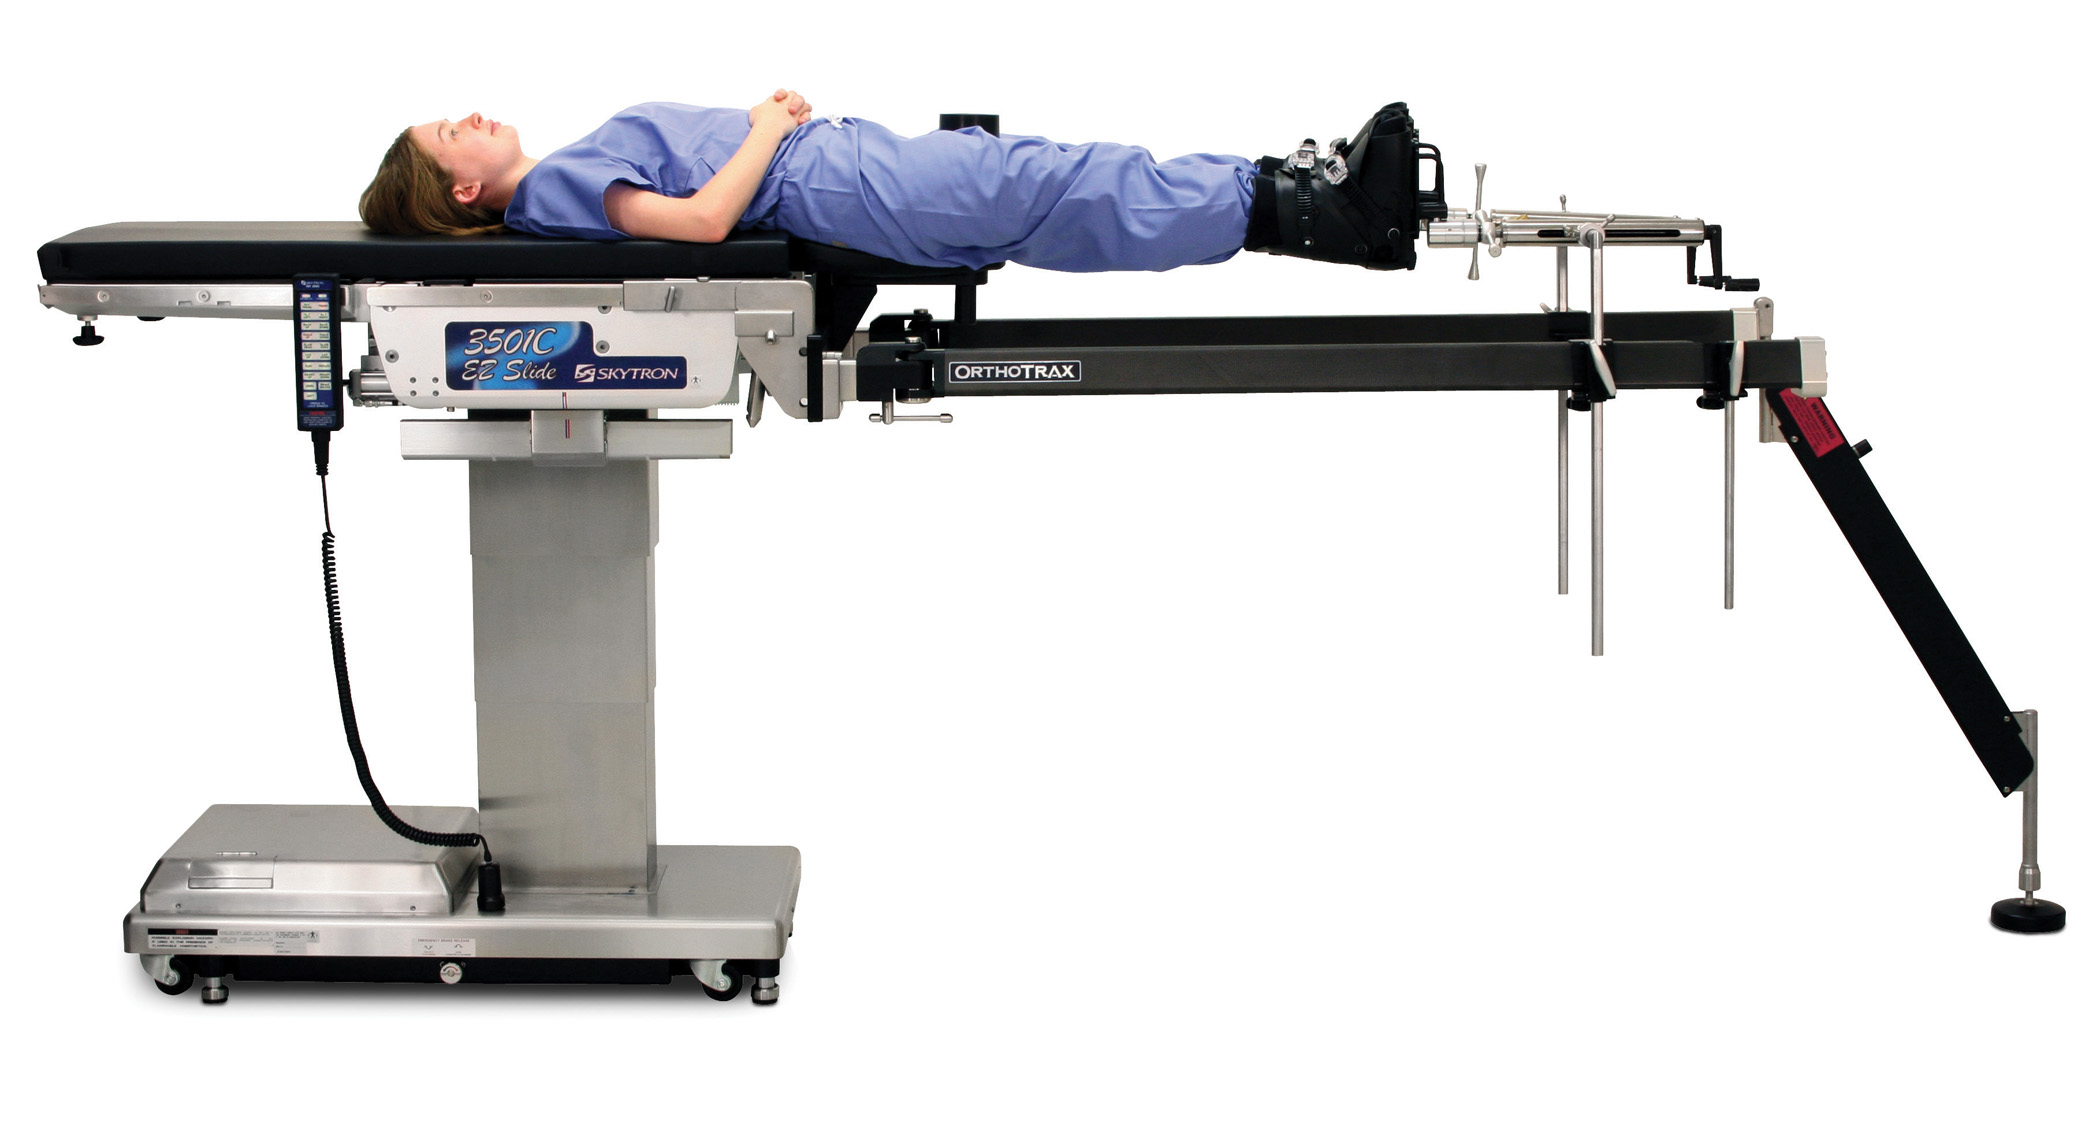 OrthoTrax Orthopaedic Surgery Table